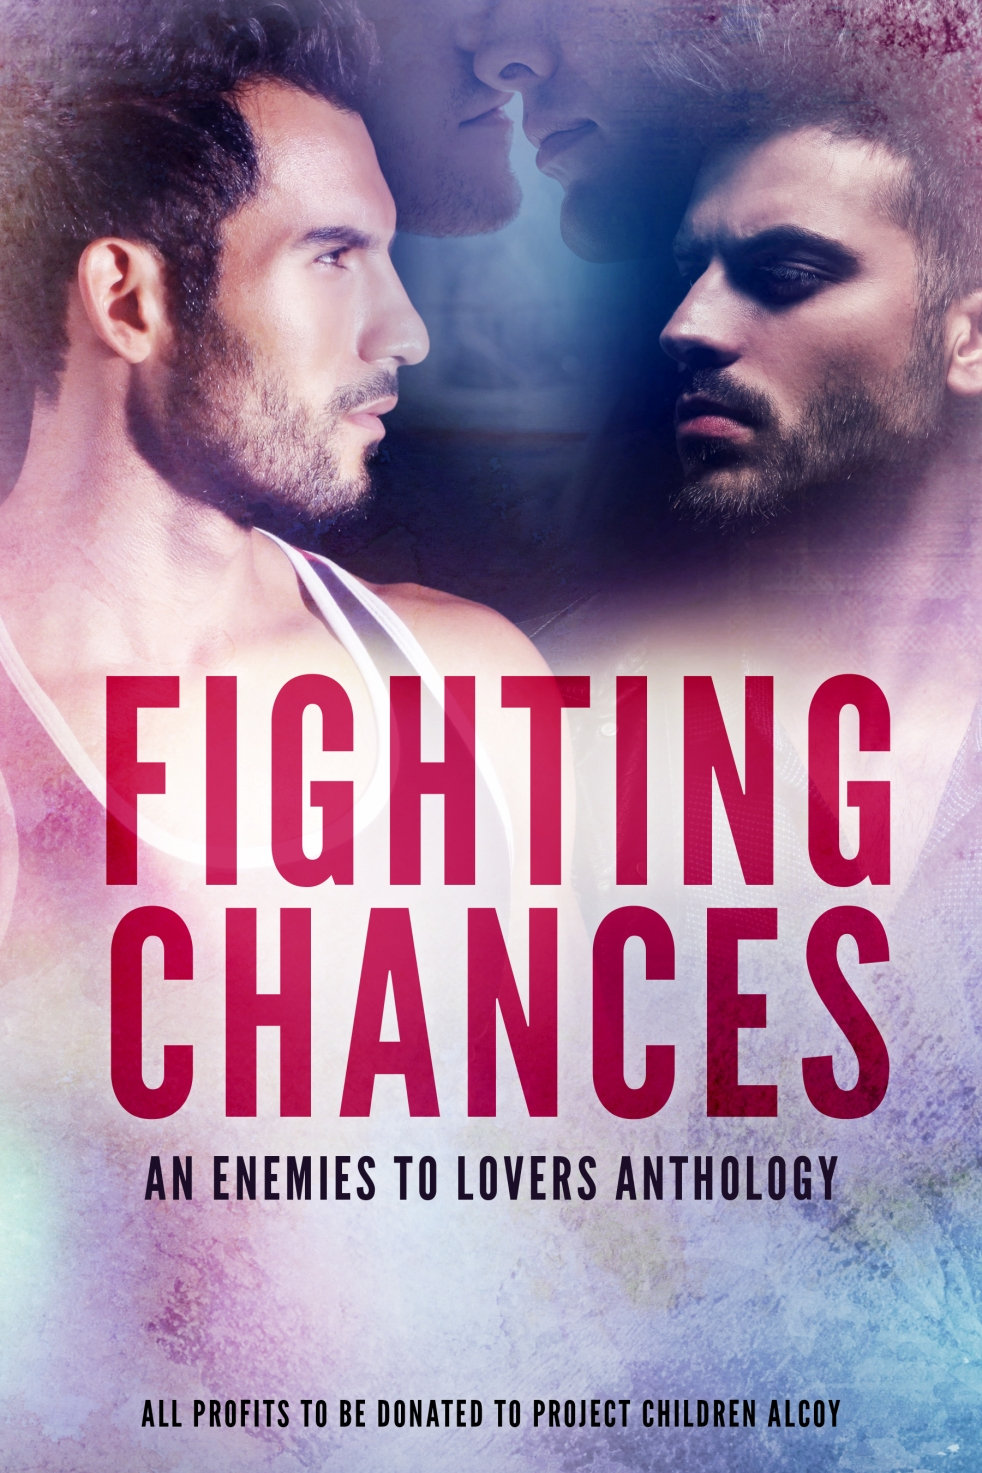 fightingchances_ebook